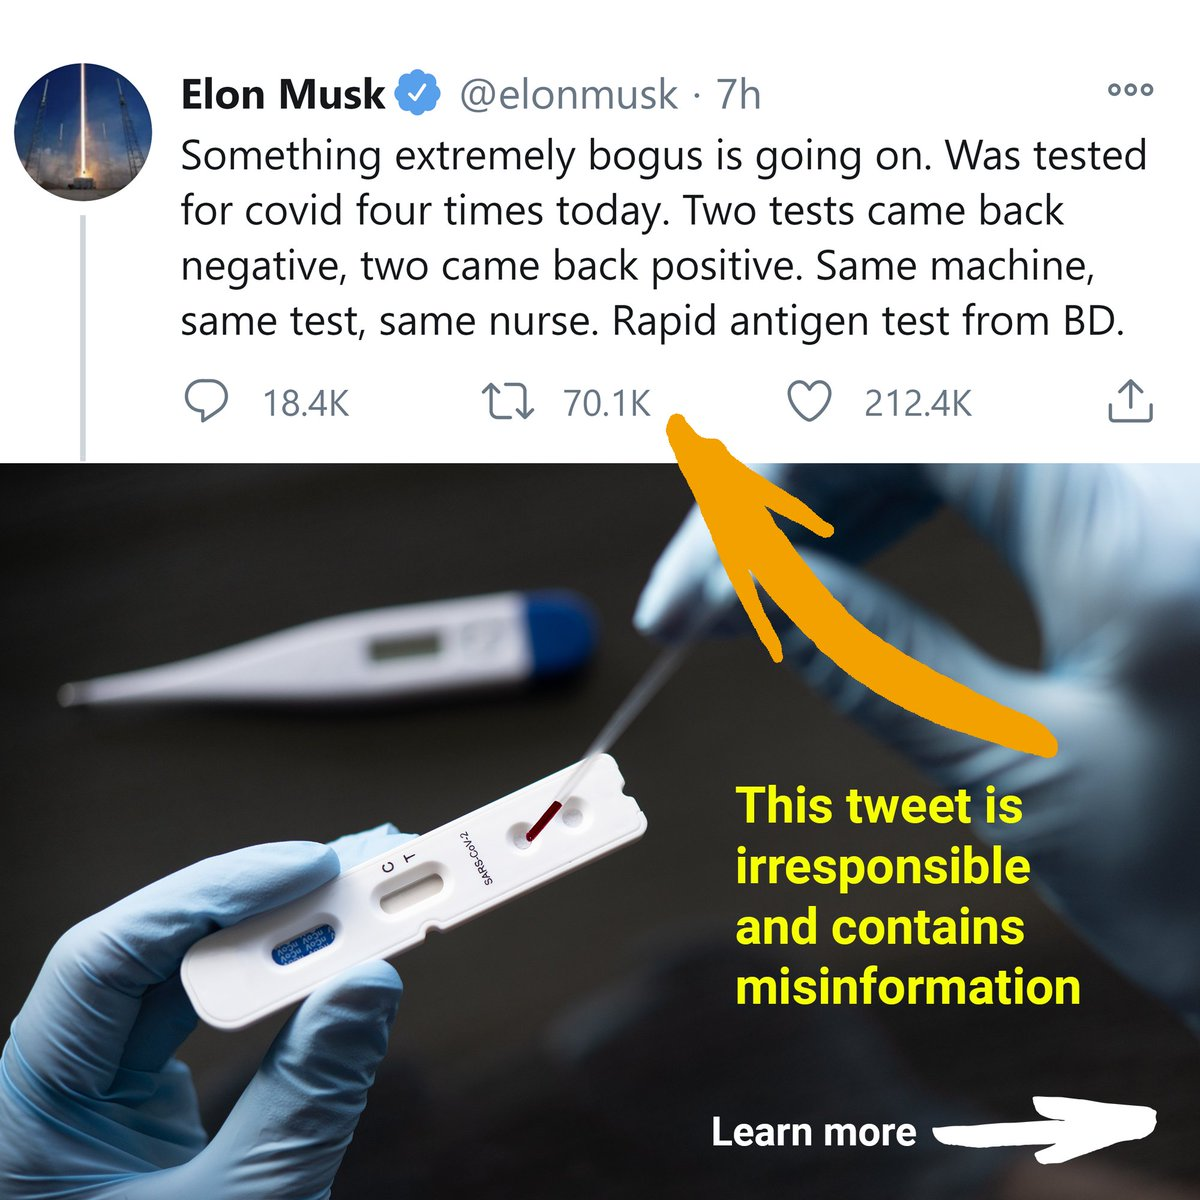 Hashem Al Ghaili On Twitter It S So Disappointing To See How Elonmusk Has Become An Amplifier For Covid 19 Misinformation Comparing Pcr Tests With Rapid Testing Kits Is Like Comparing Apples With Oranges Both